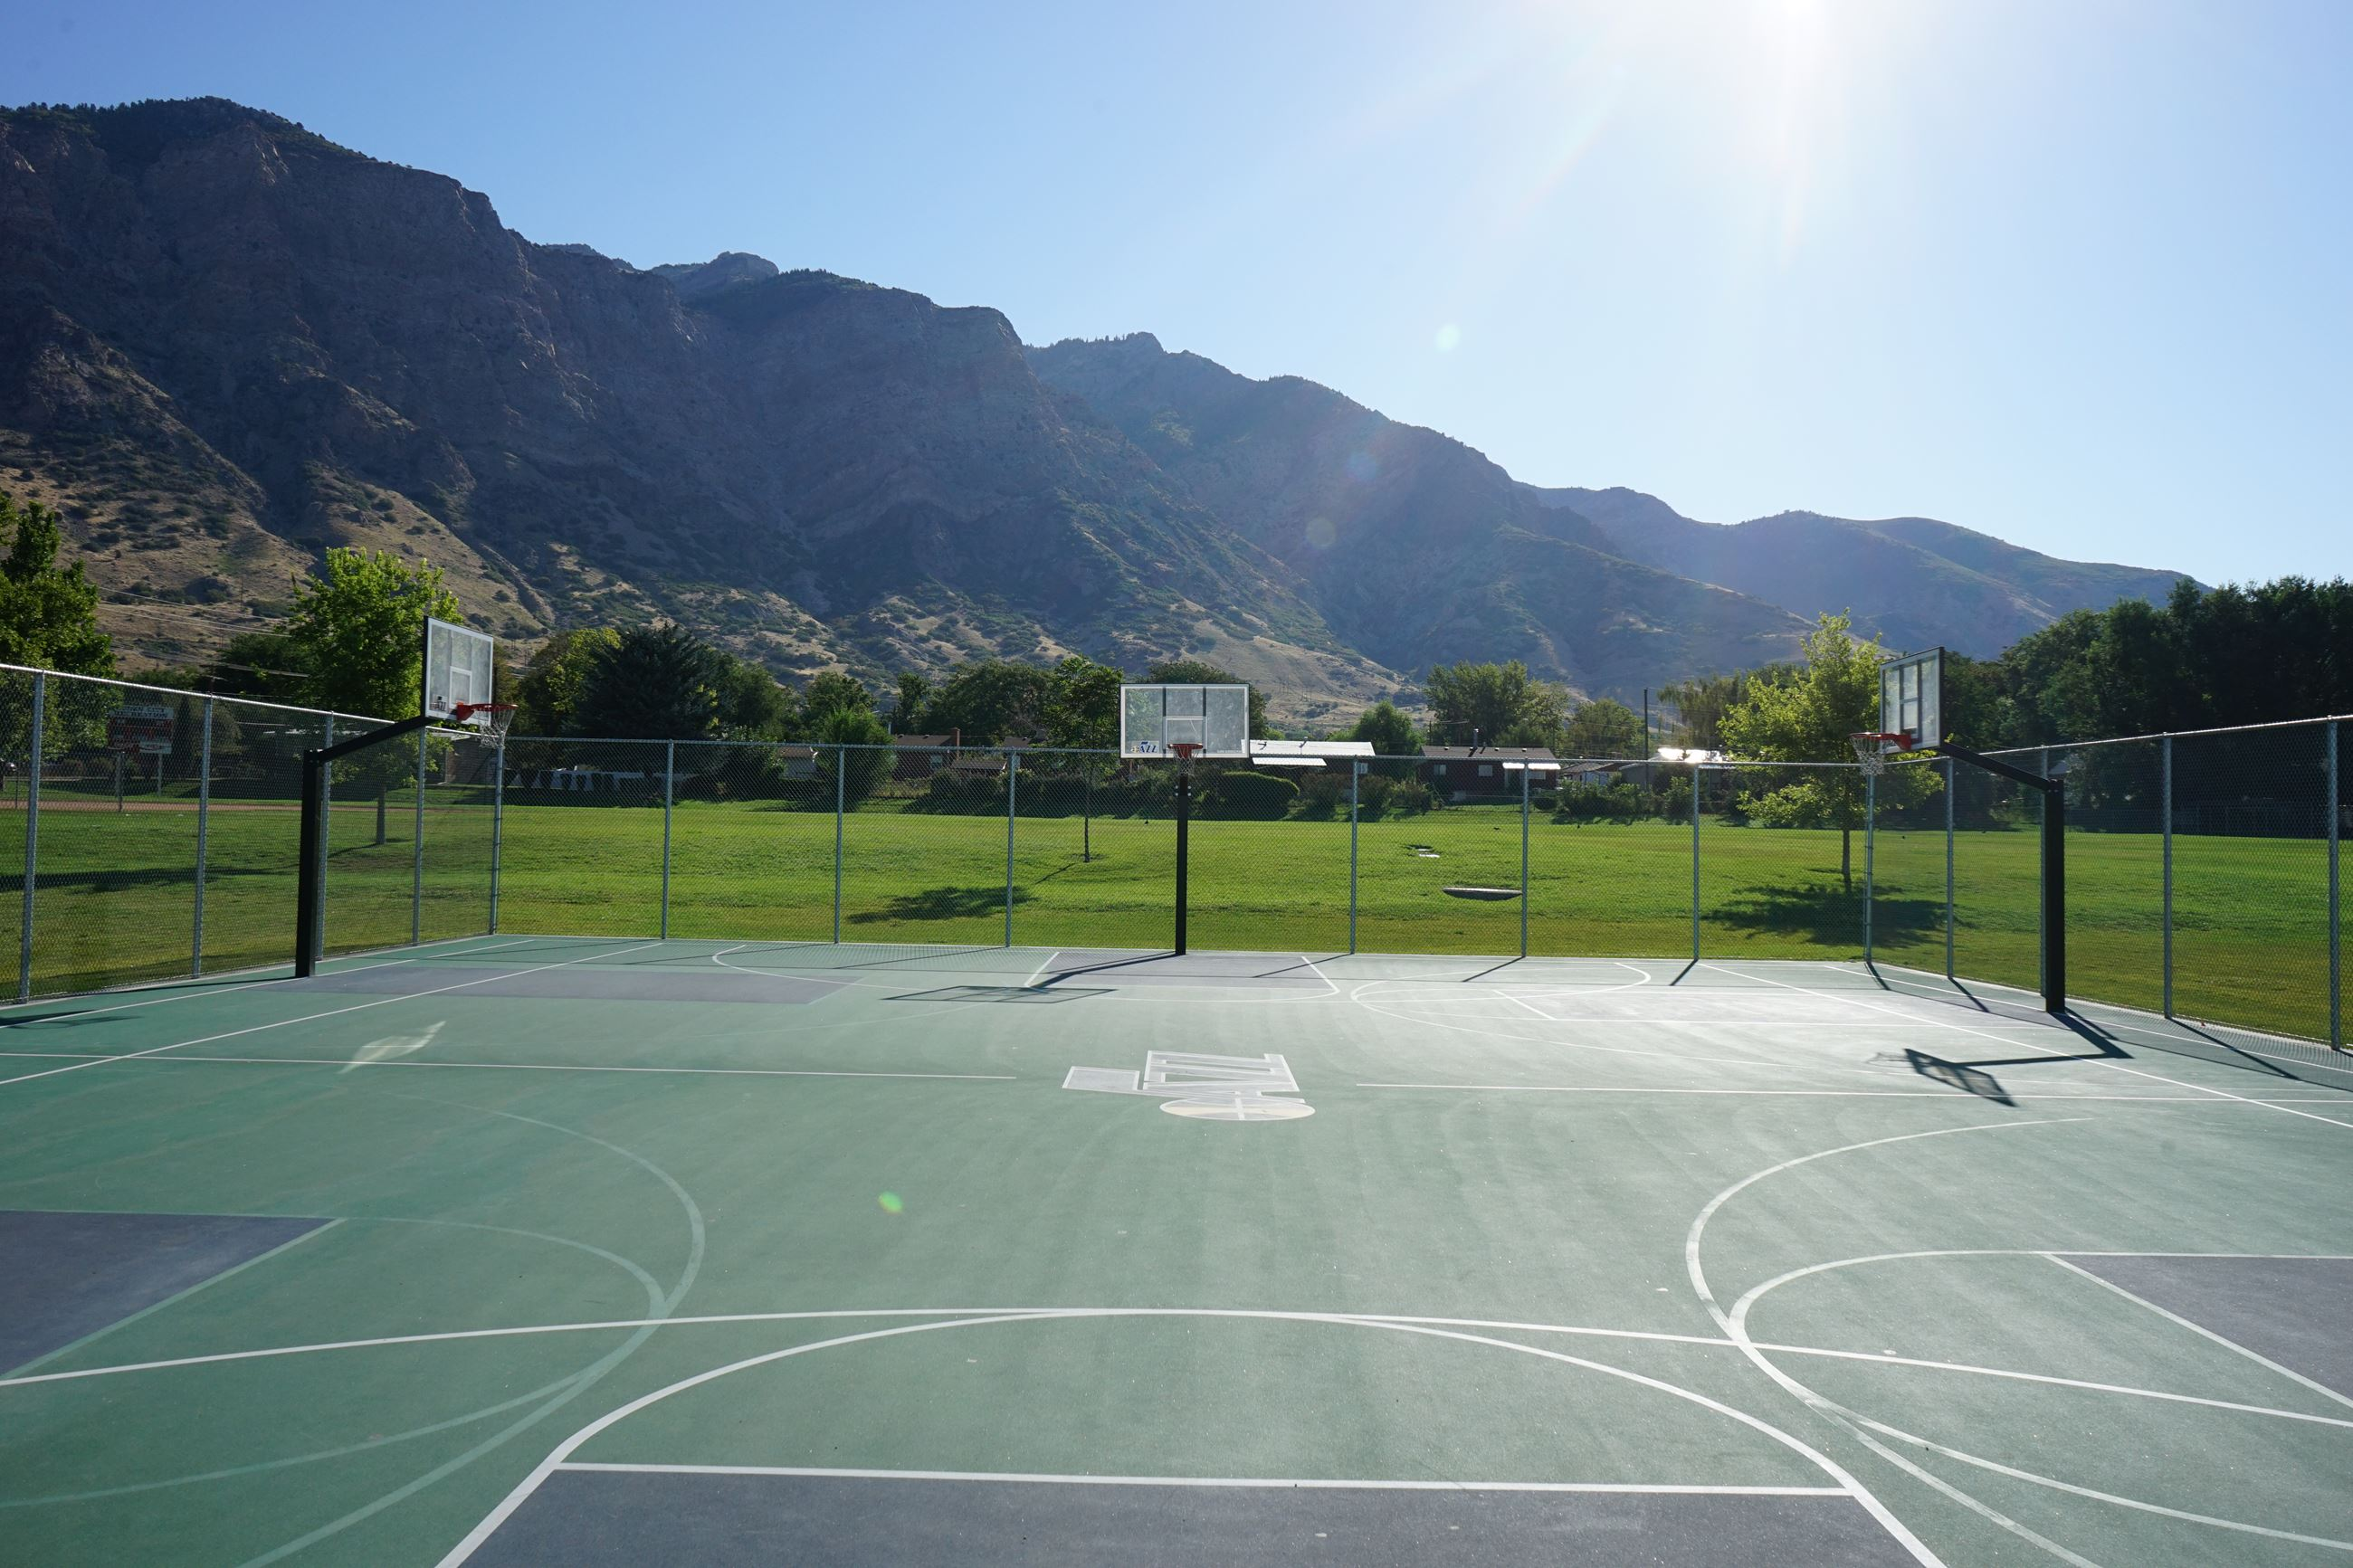 A basketball court with mountains in the background